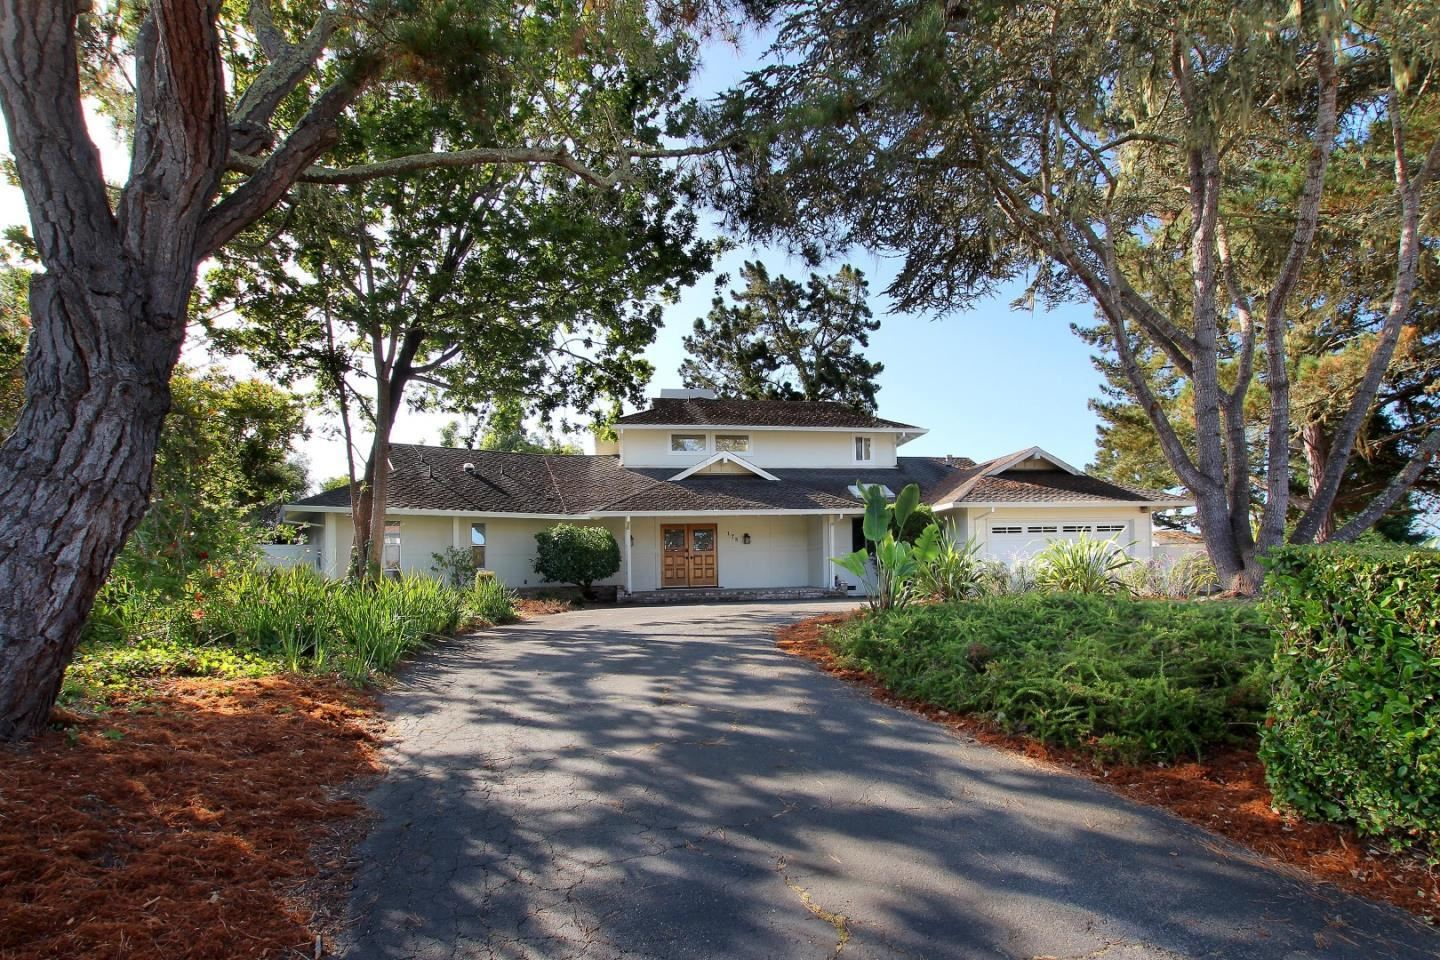 Photo for 175 Tamarack DR, APTOS, CA 95003 (MLS # ML81781160)